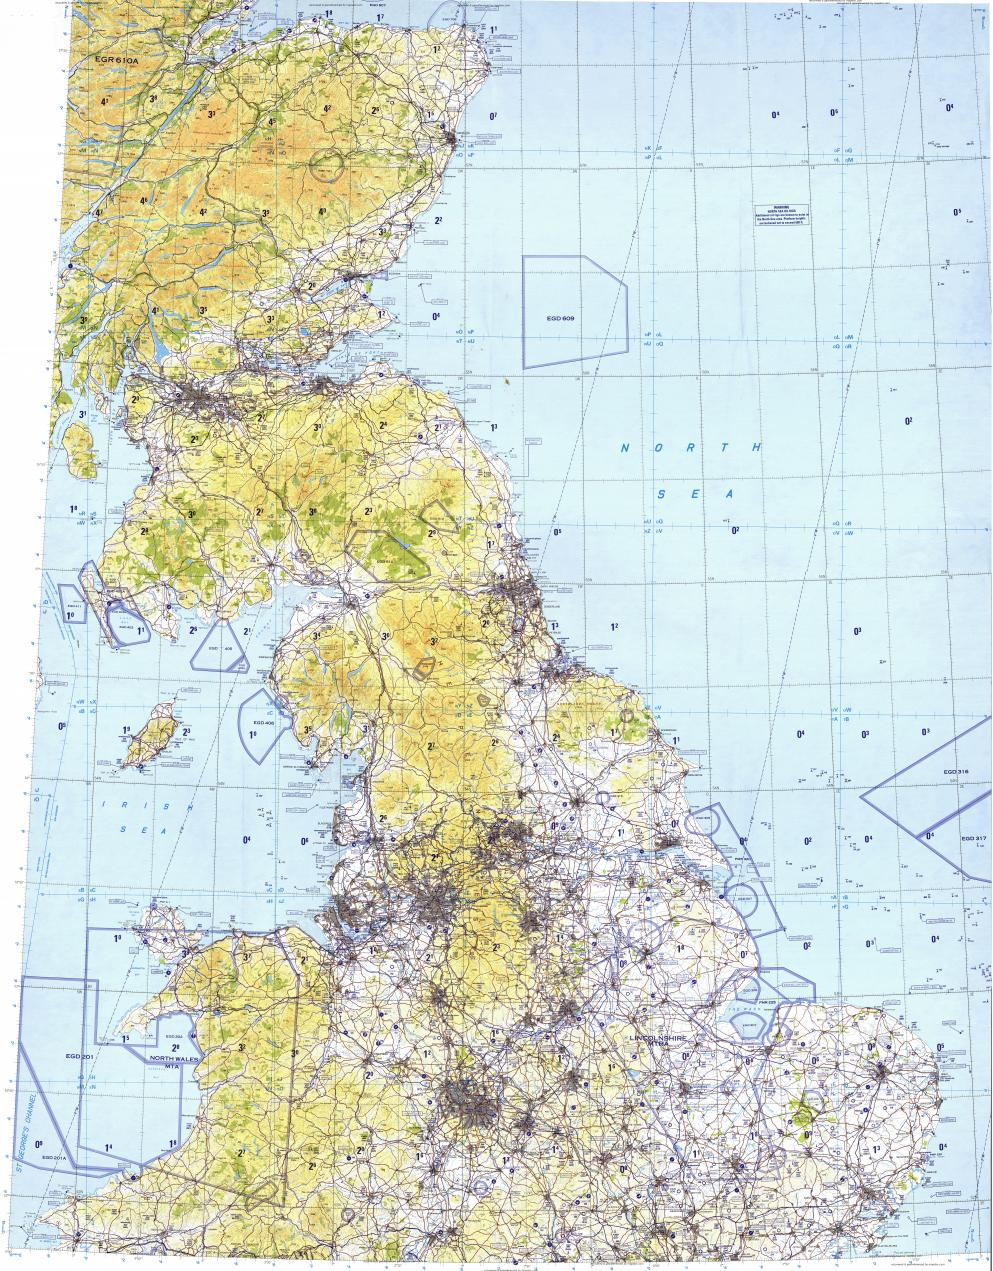 Download Topographic Map In Area Of London Birmingham Manchester - London map manchester